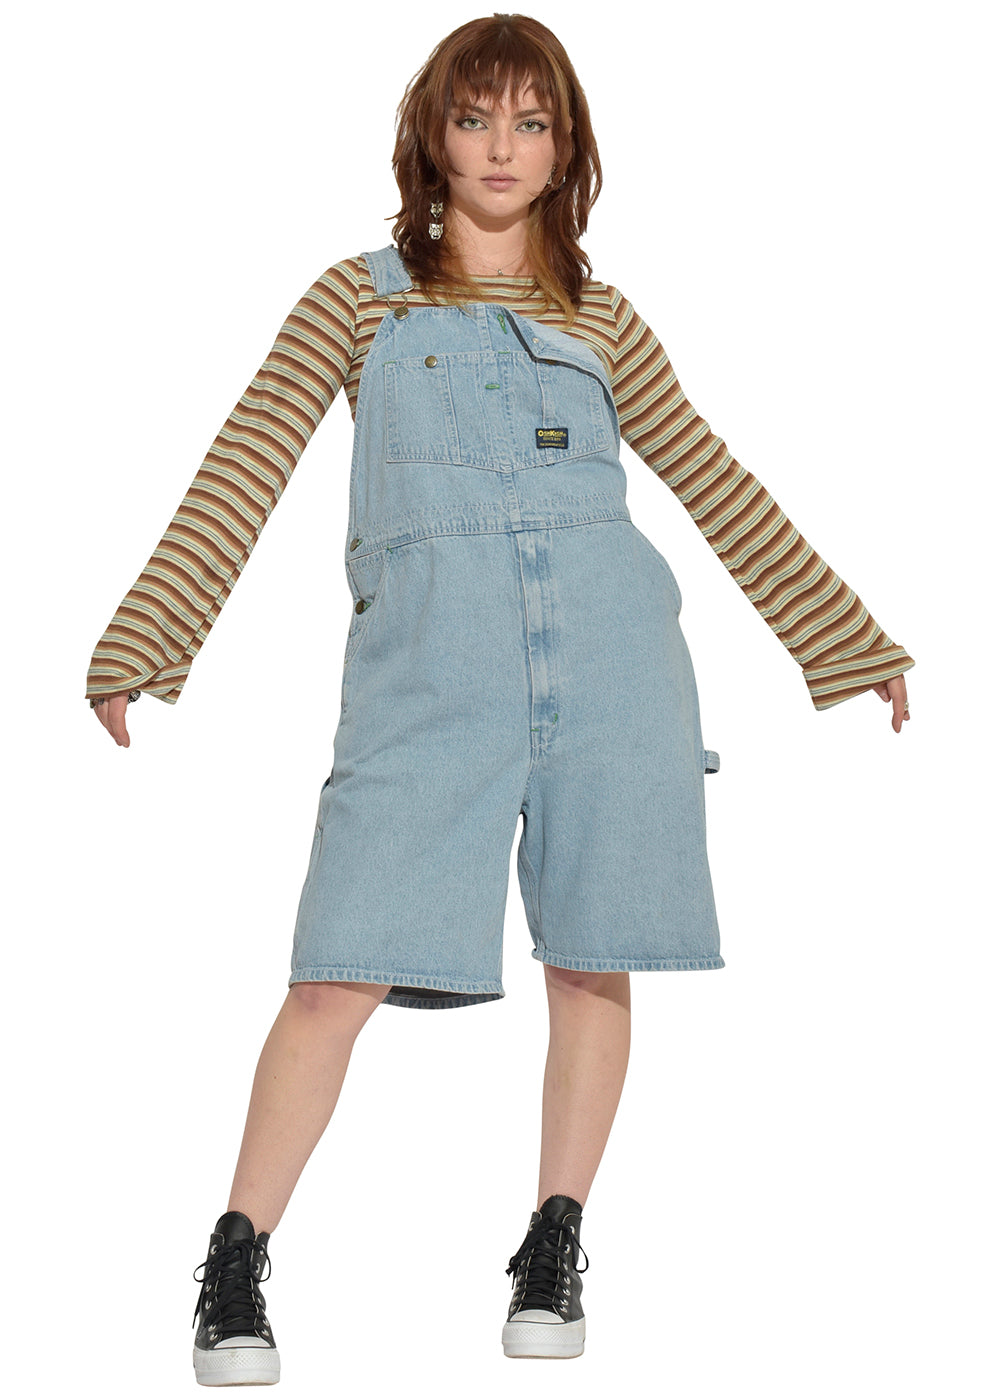 Little Michigan Overalls & Striped Sweater Tease Top